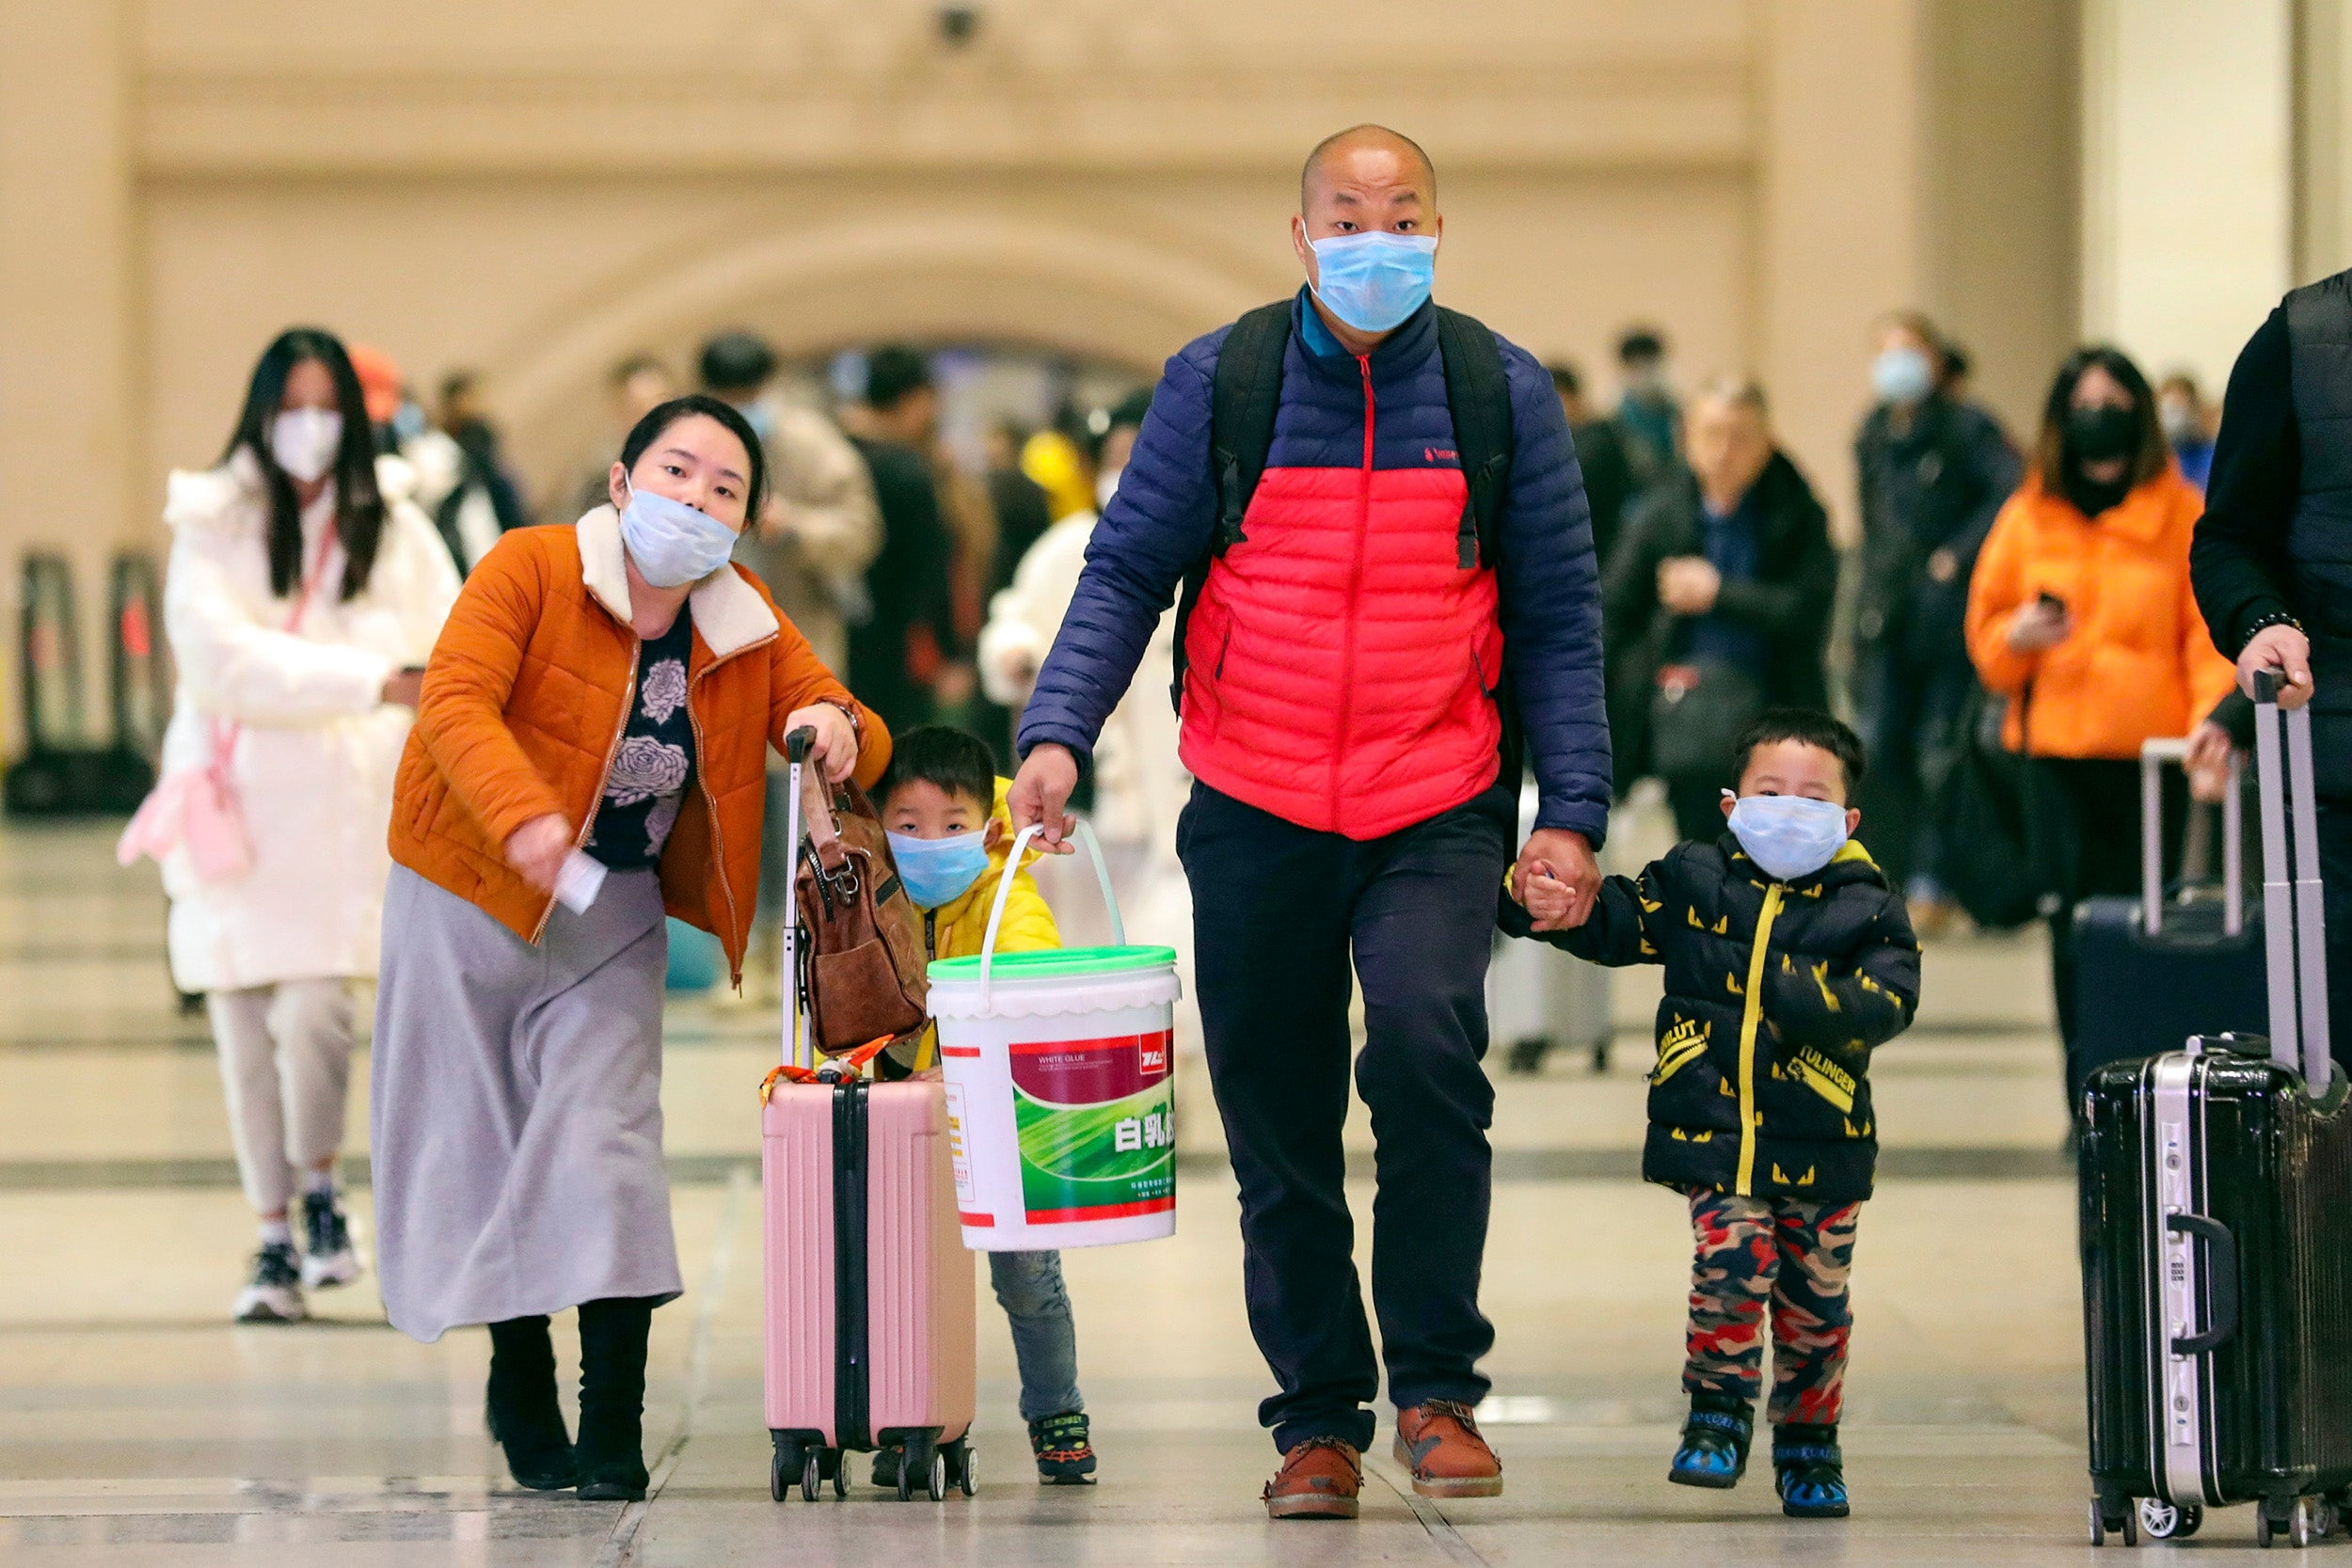 Masked travelers tote luggage in Wuhan in January.